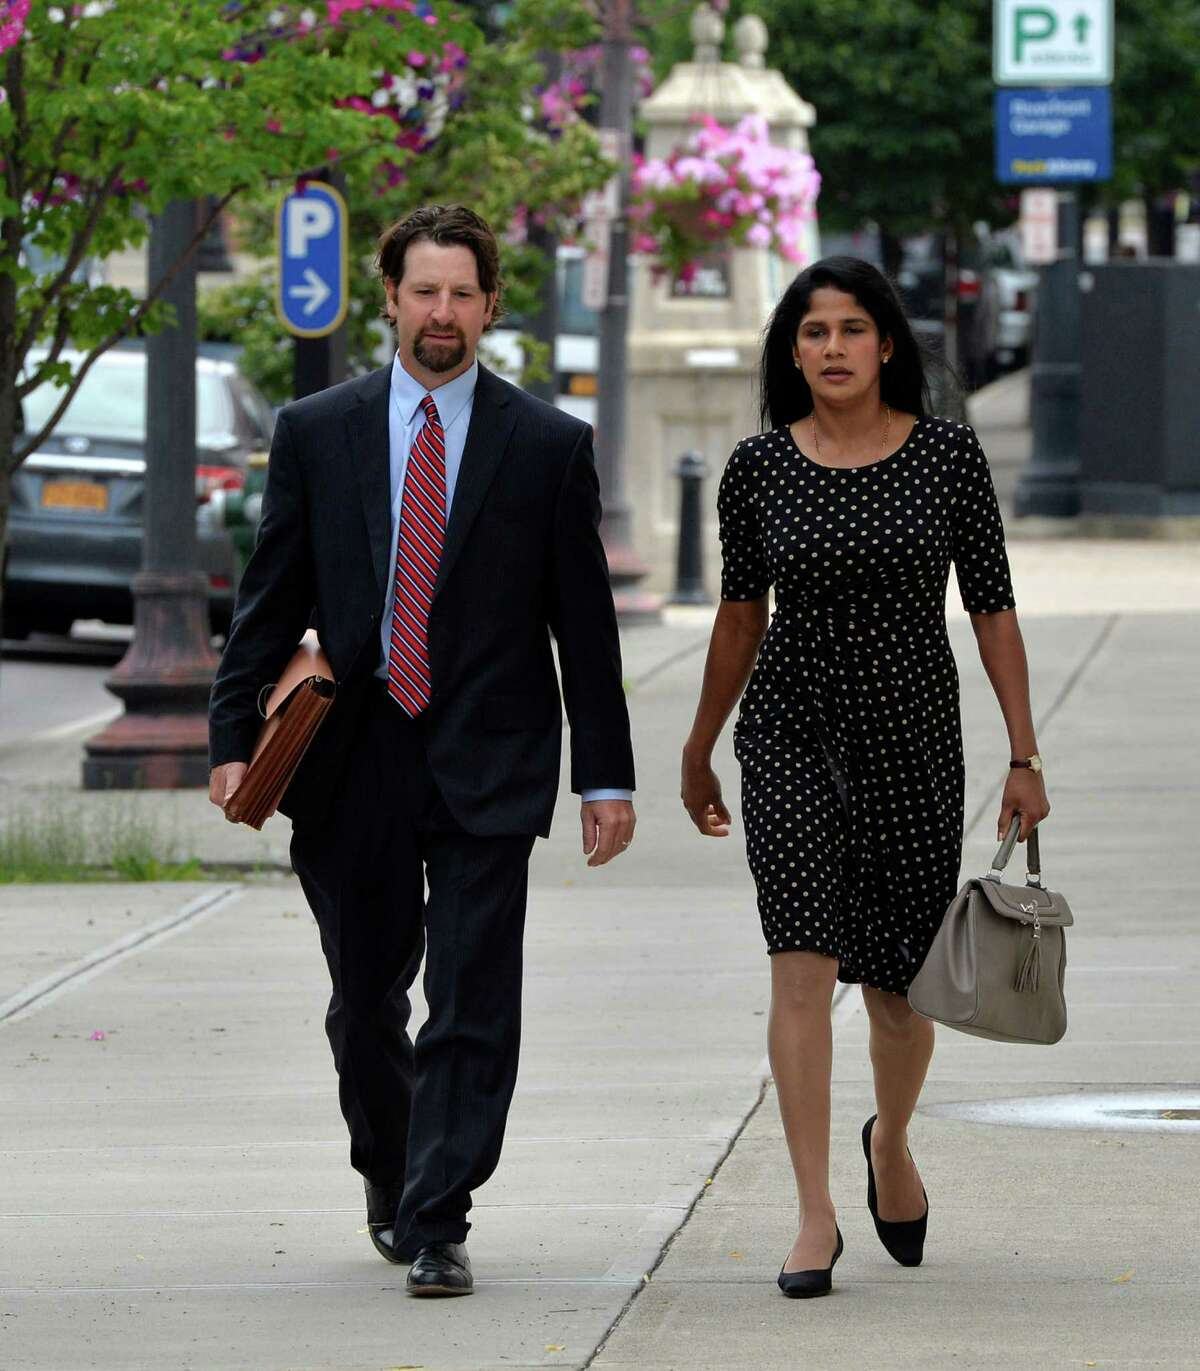 Annie George, right, arrives for her sentencing at the Federal Courthouse with her attorney Mark Sacco, left, Monday morning, July 9, 2013, in Albany, N.Y. (Skip Dickstein/Times Union)